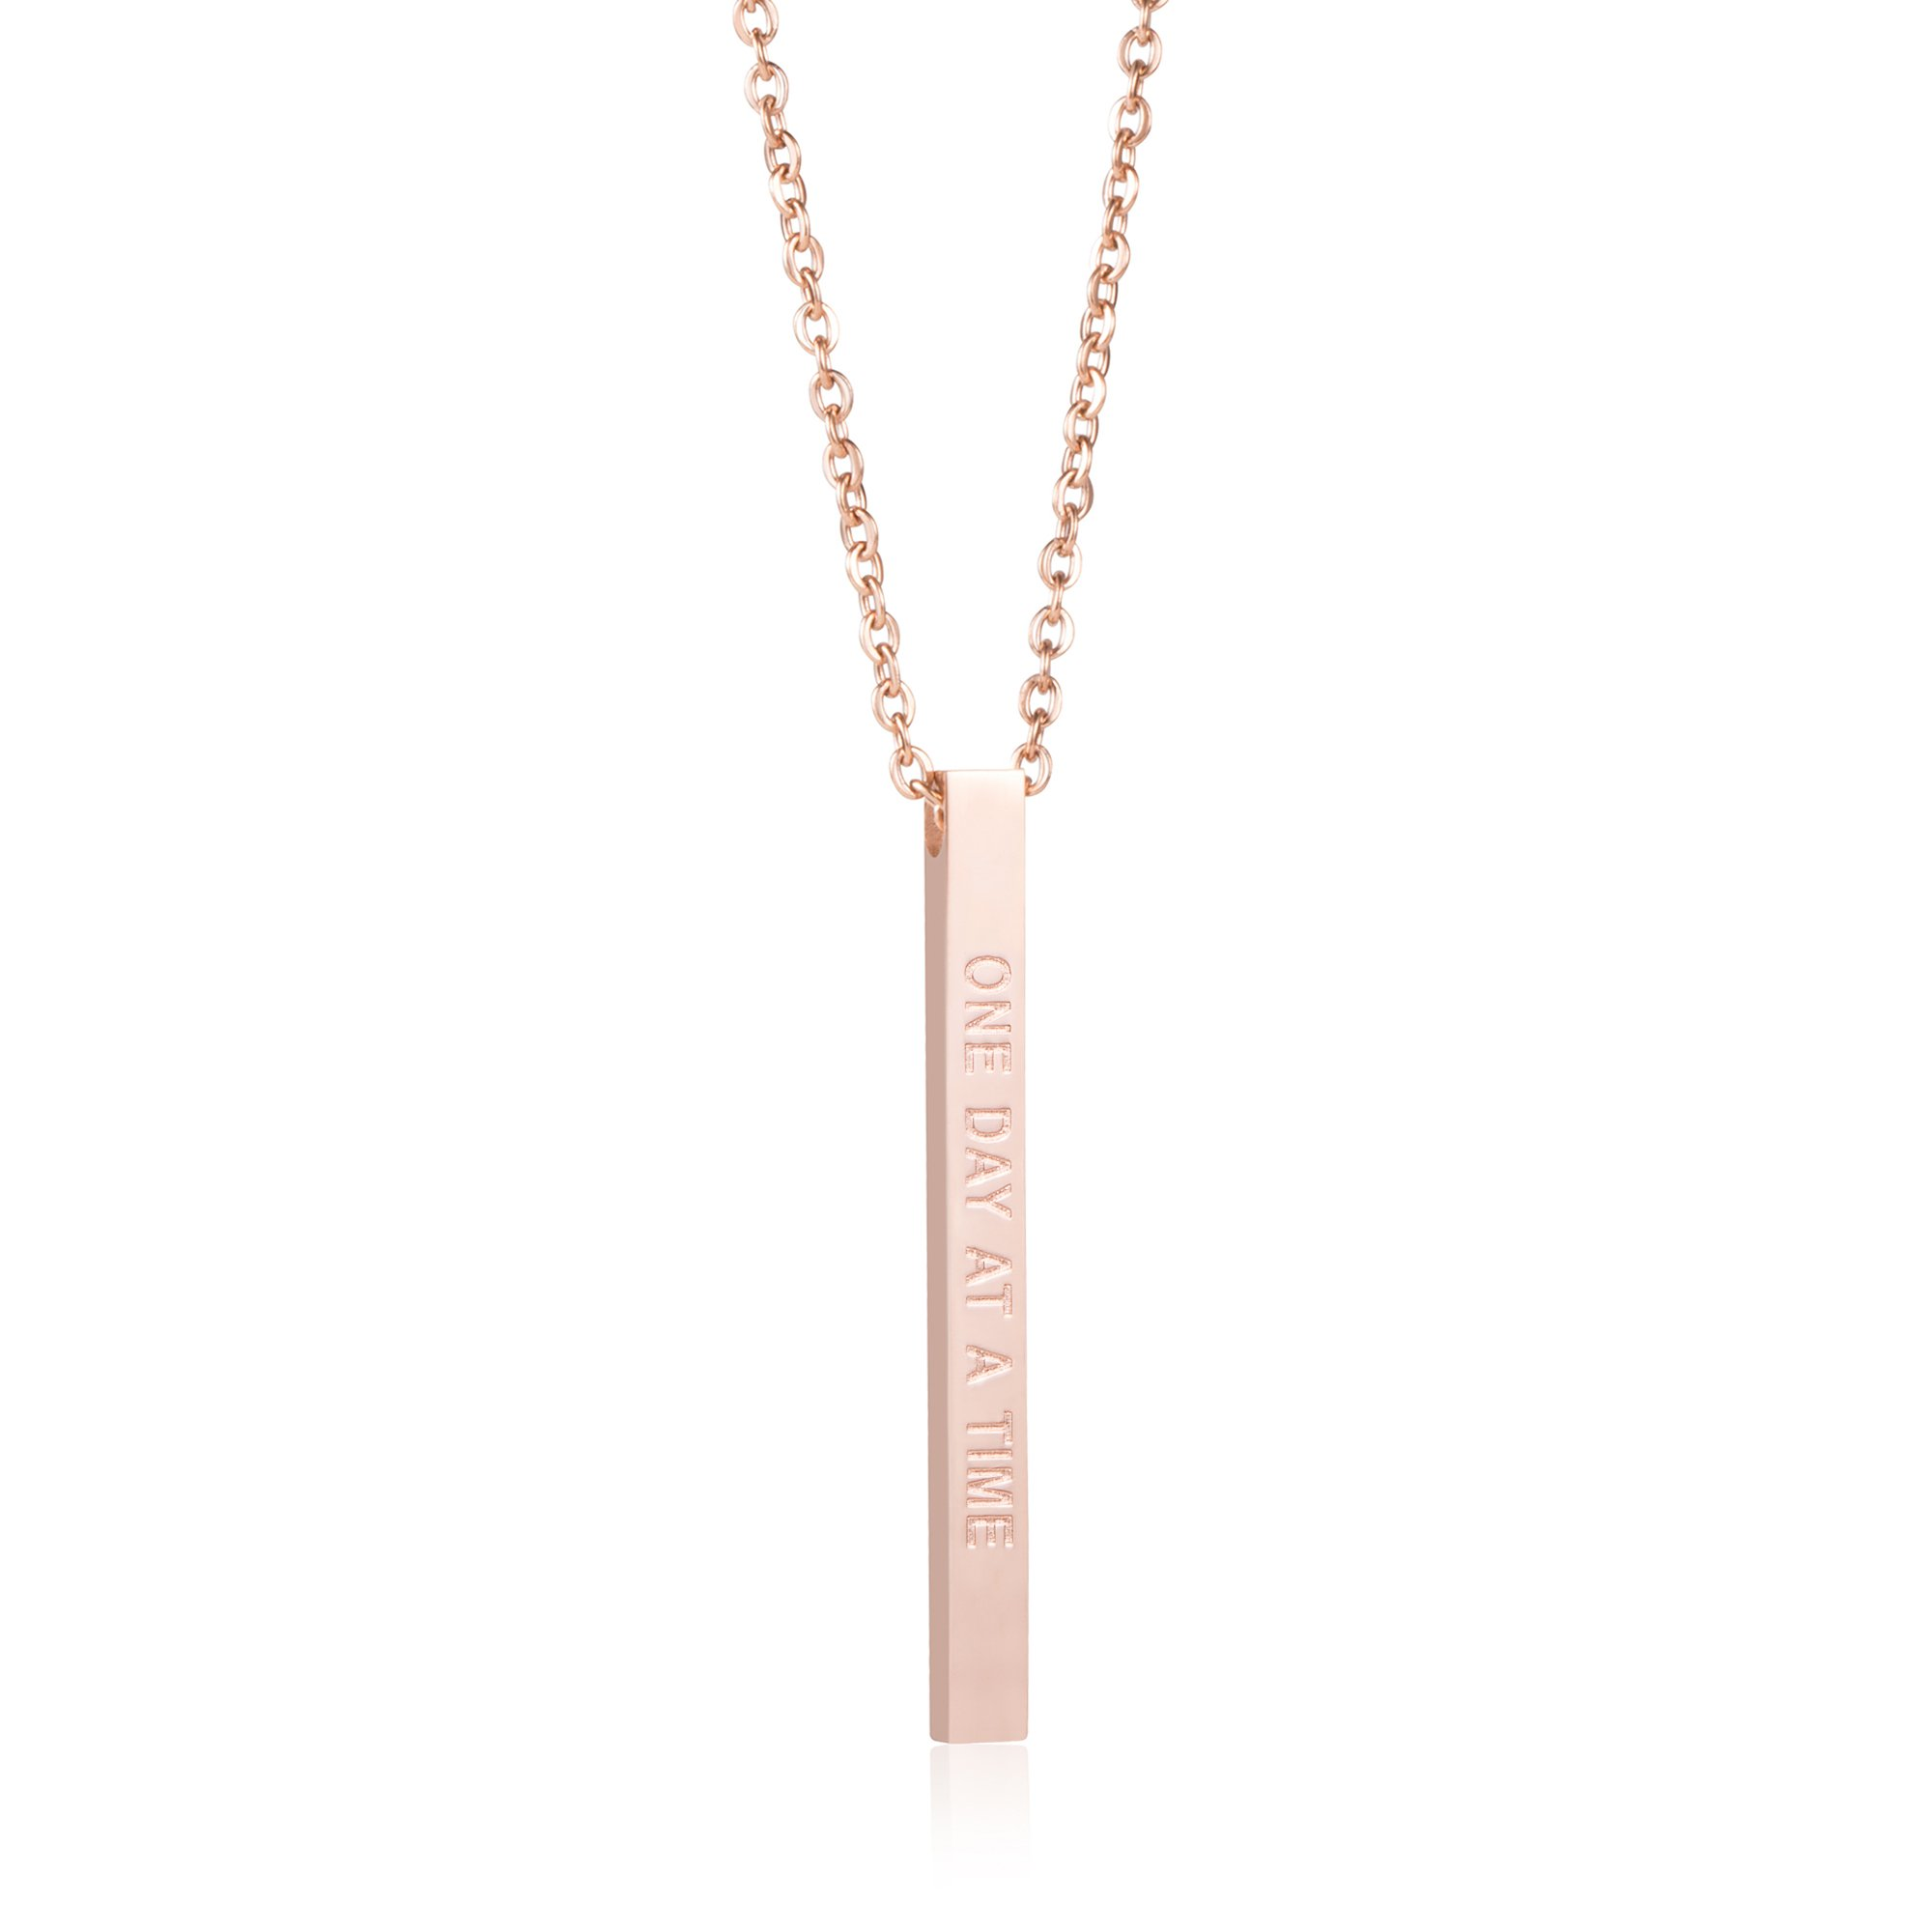 Joycuff Inspired Jewelry New Mom Gifts Vertical Bar Necklace Mantra Sobriety Saying One Day at A Time by Joycuff (Image #1)